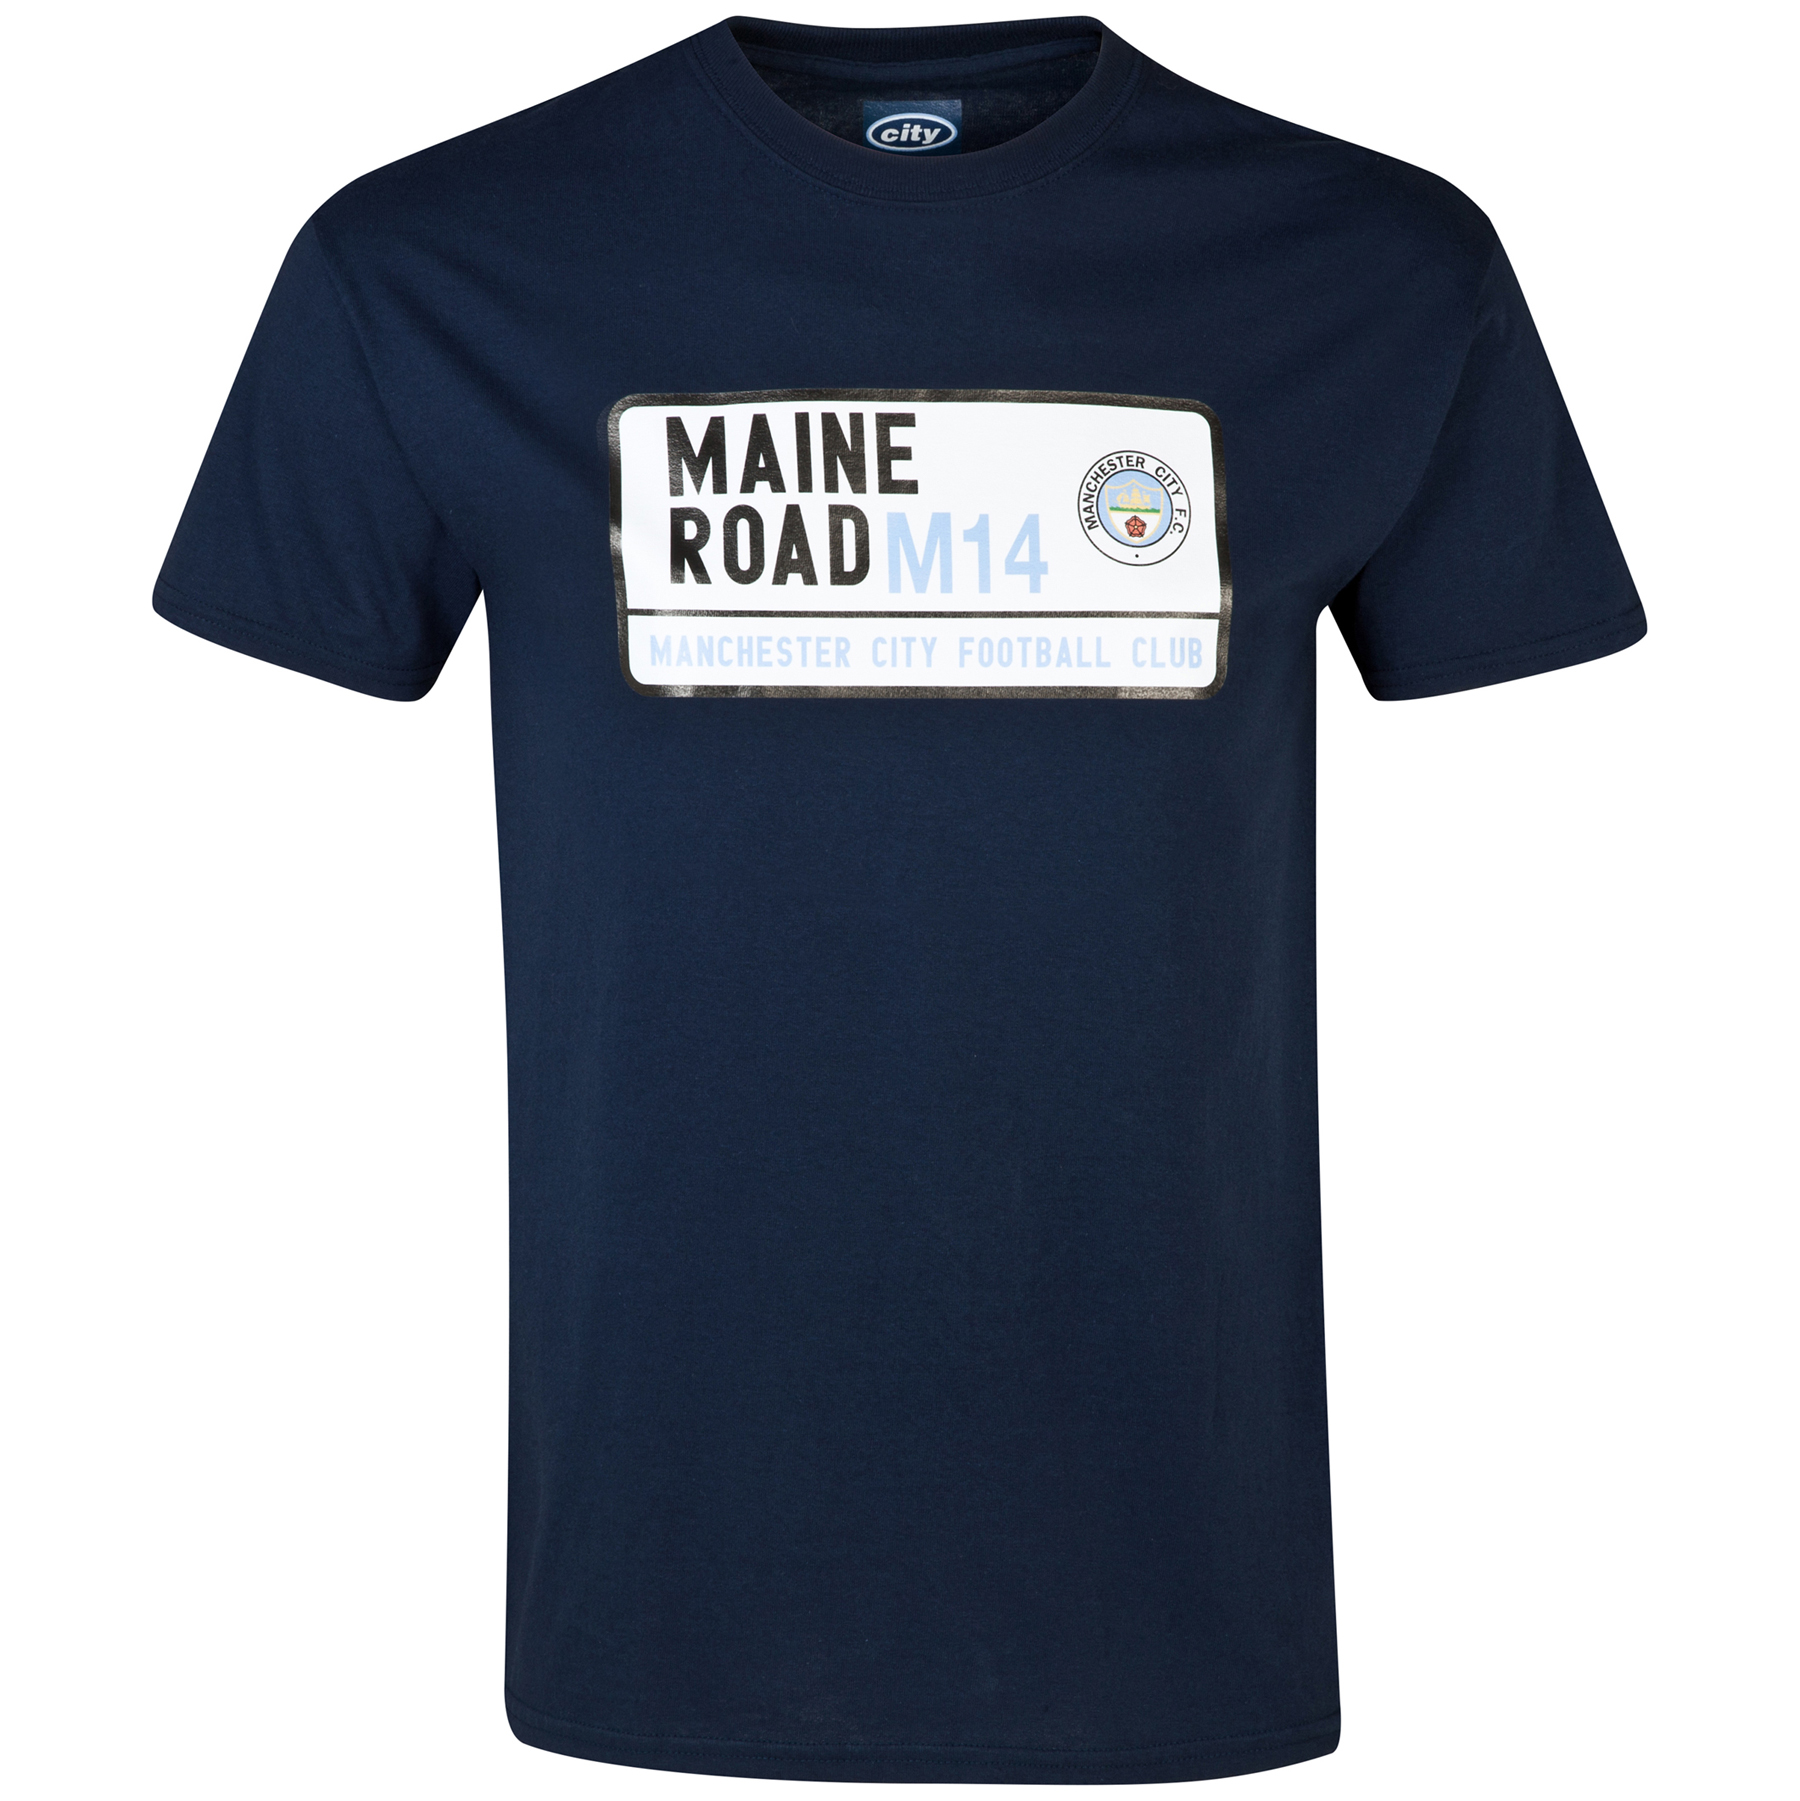 Manchester City Maine T-Shirt - Navy